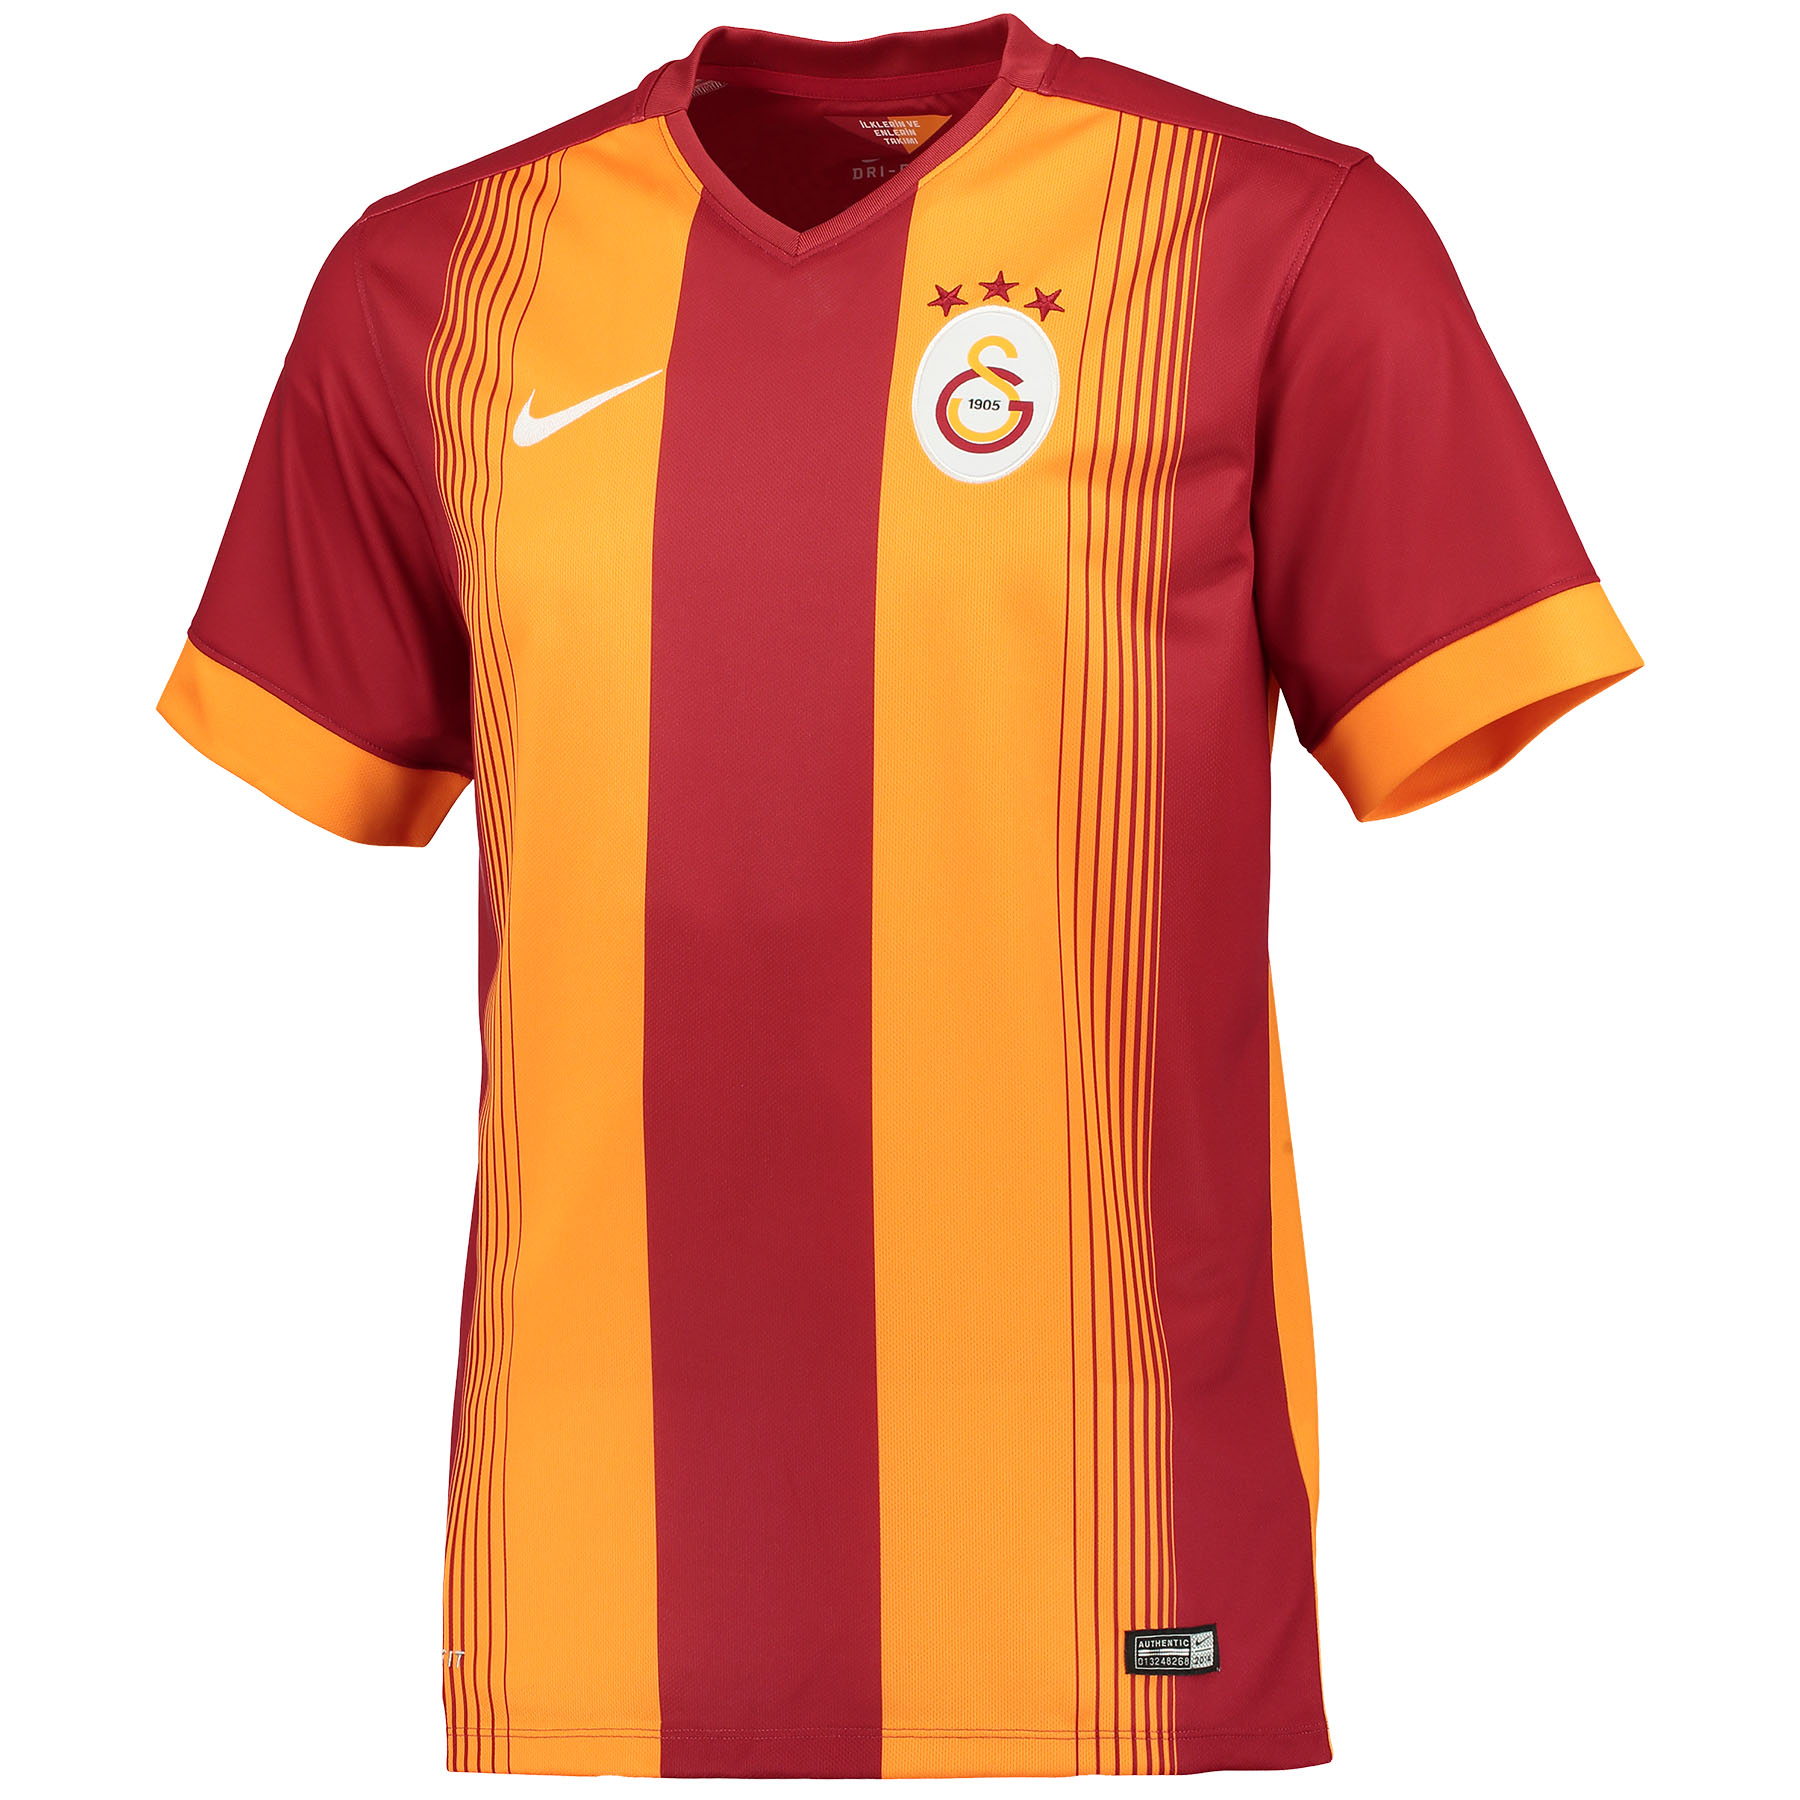 Galatasaray Home Shirt 2014/15 Red